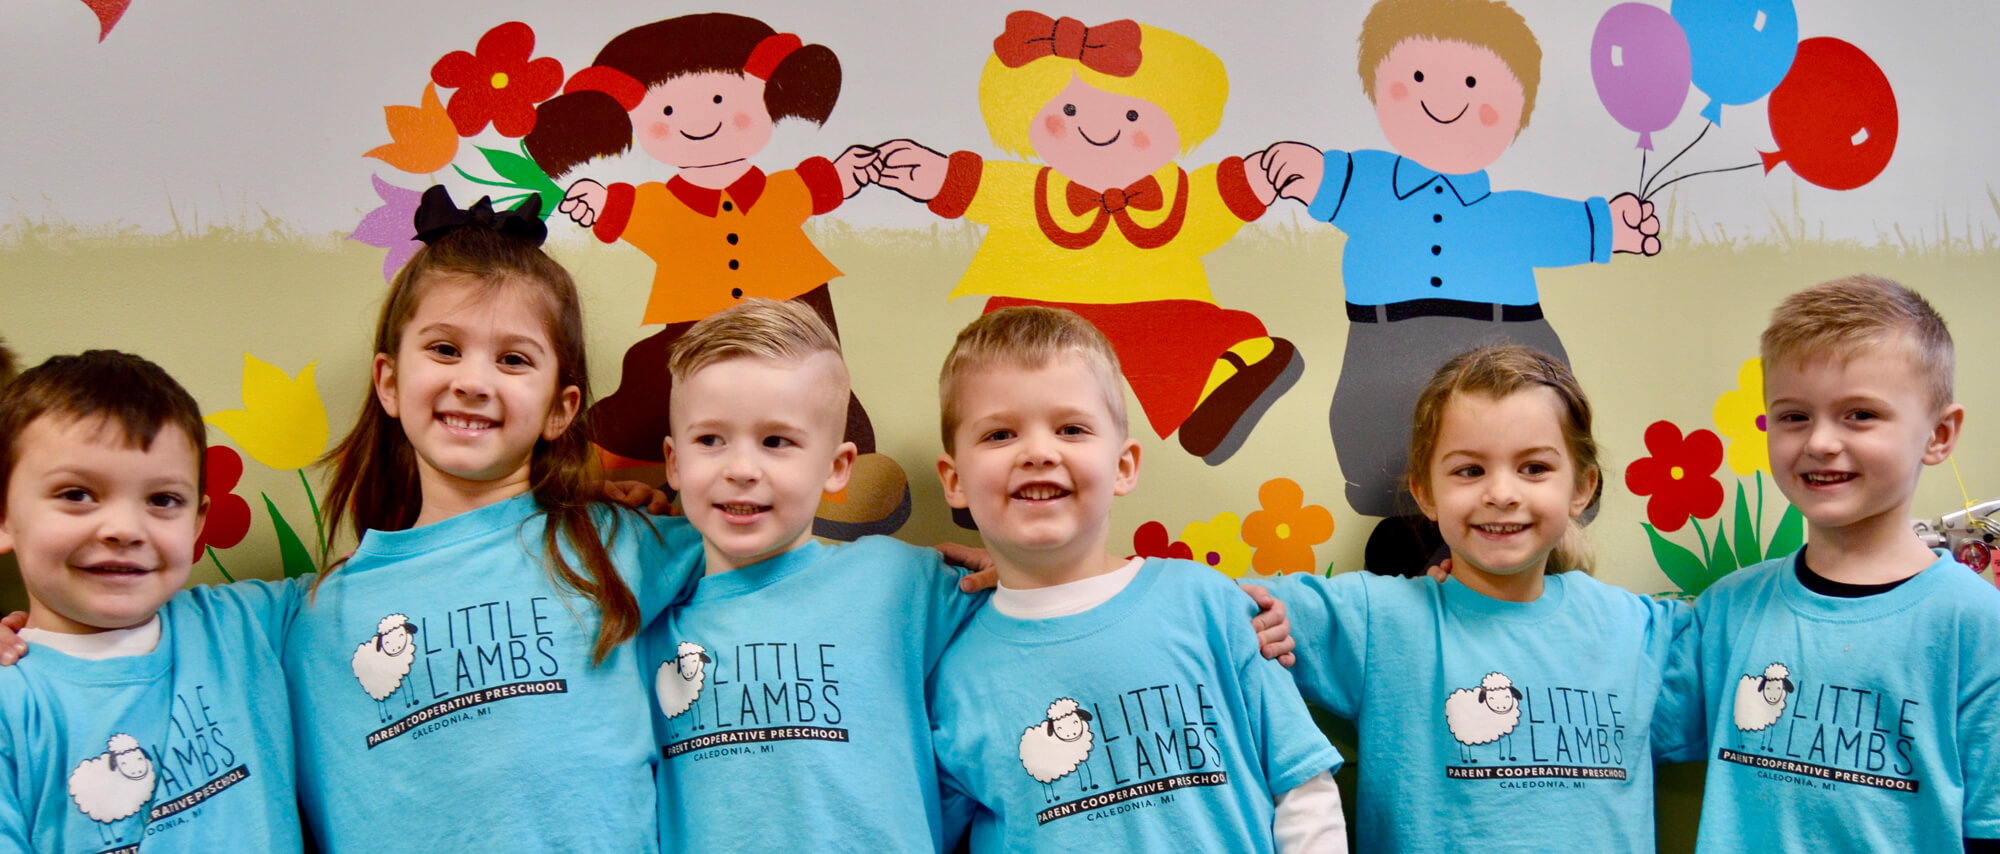 Smiling children wearing Little Lamb tee shirts